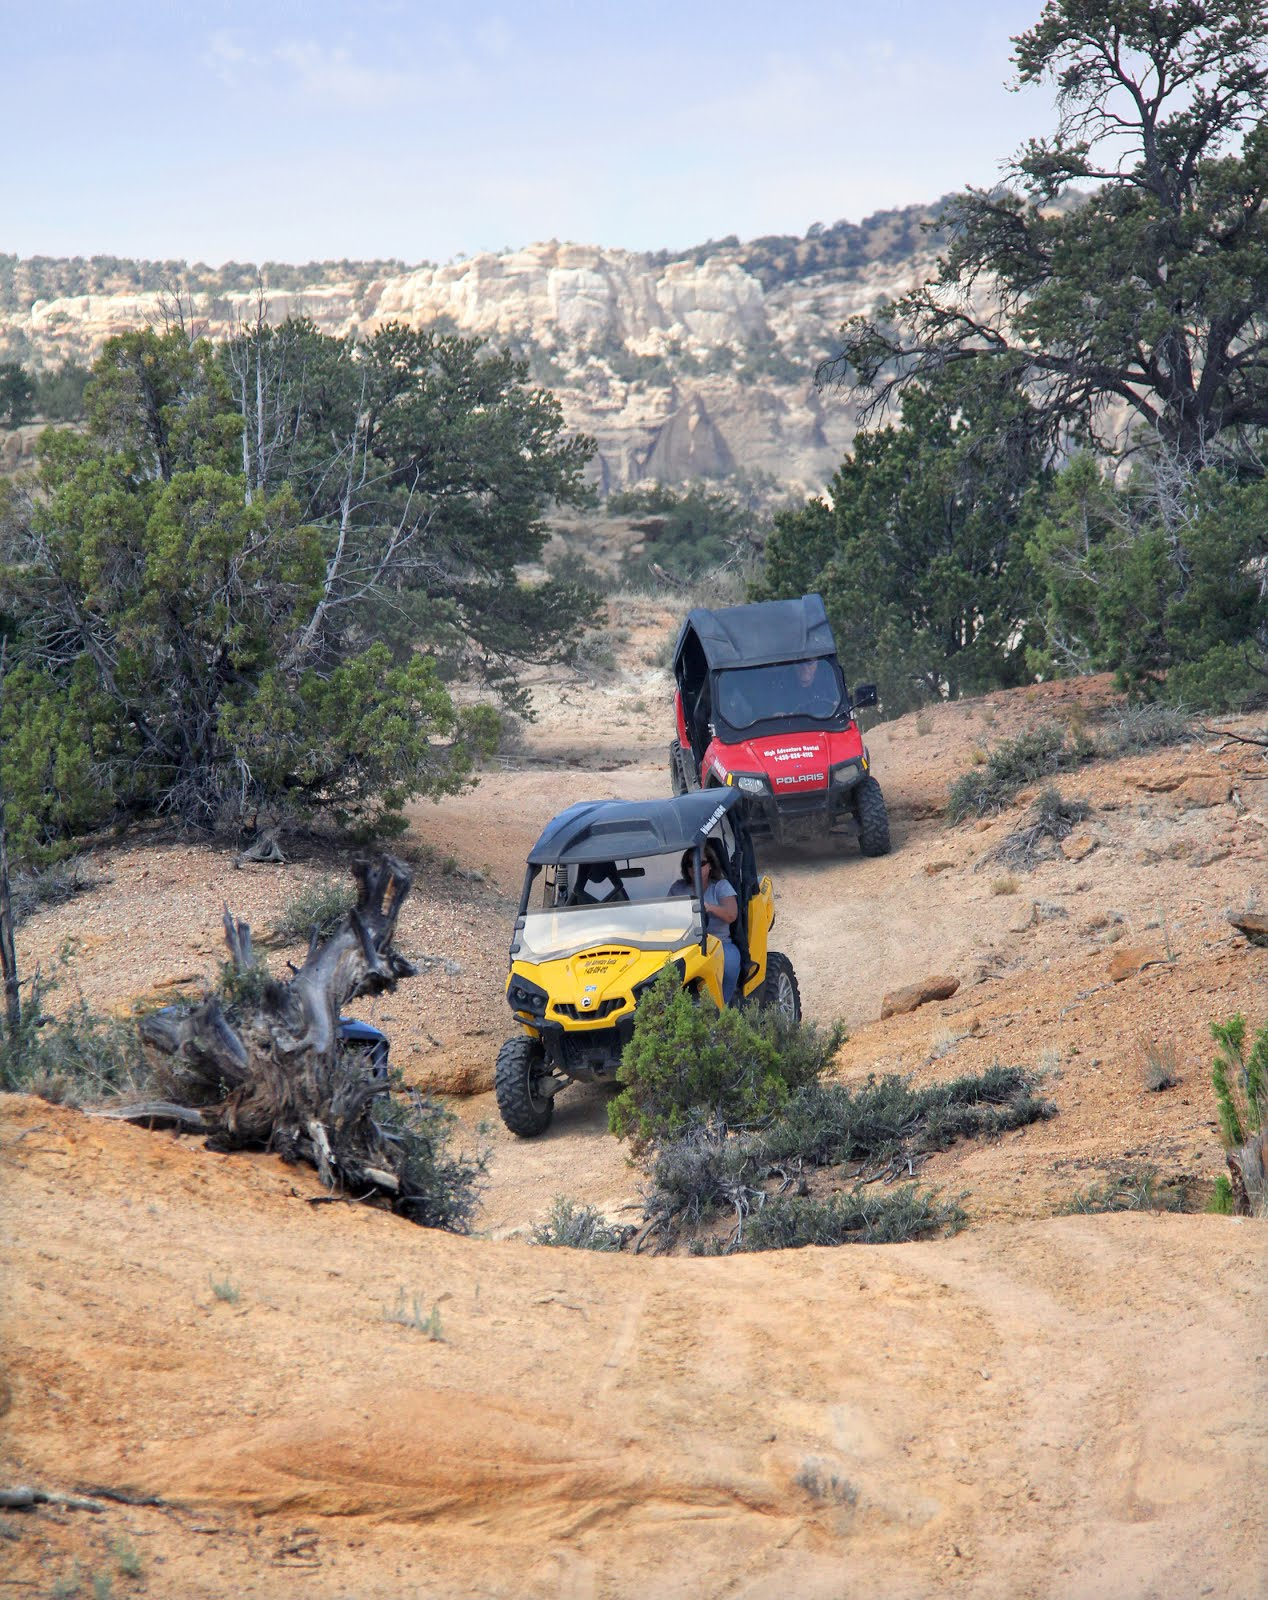 ATV Rides in Bryce Canyon